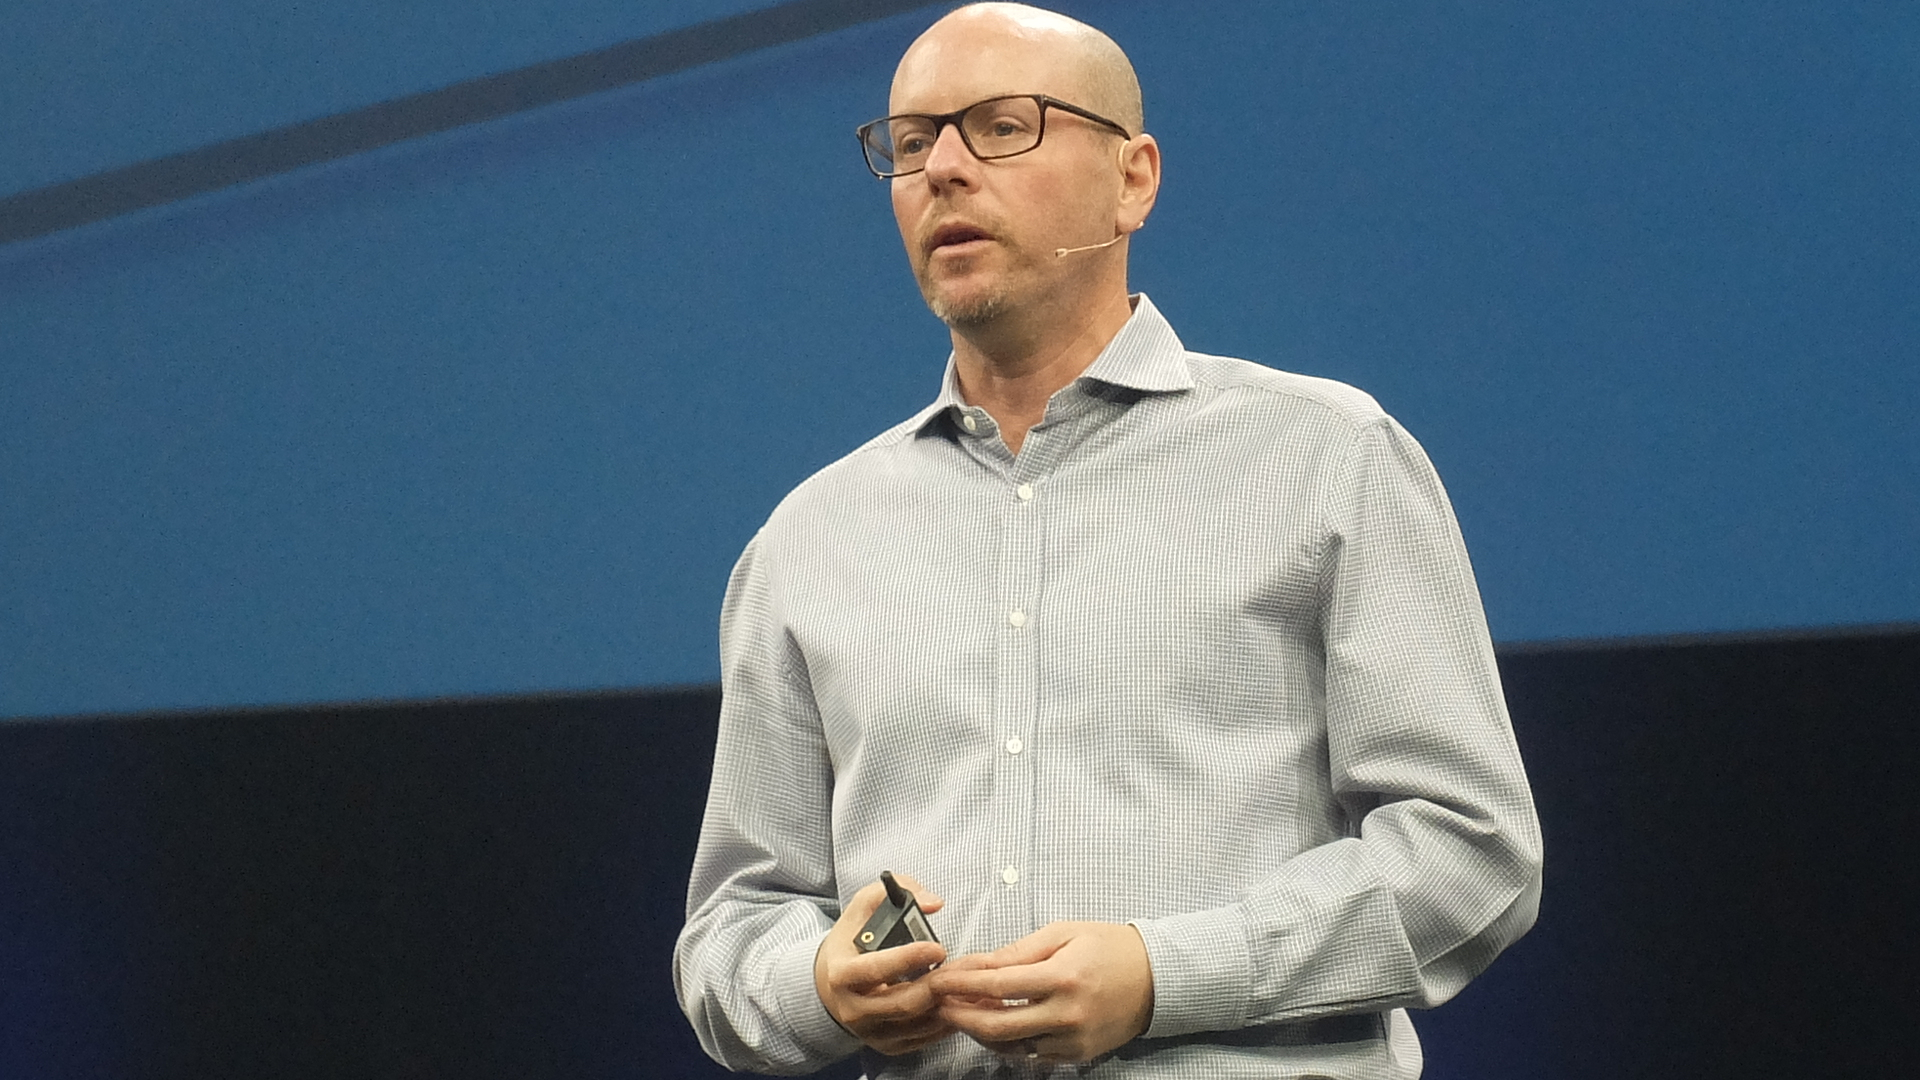 NetSuite's journey to the cloud: from startup to public company